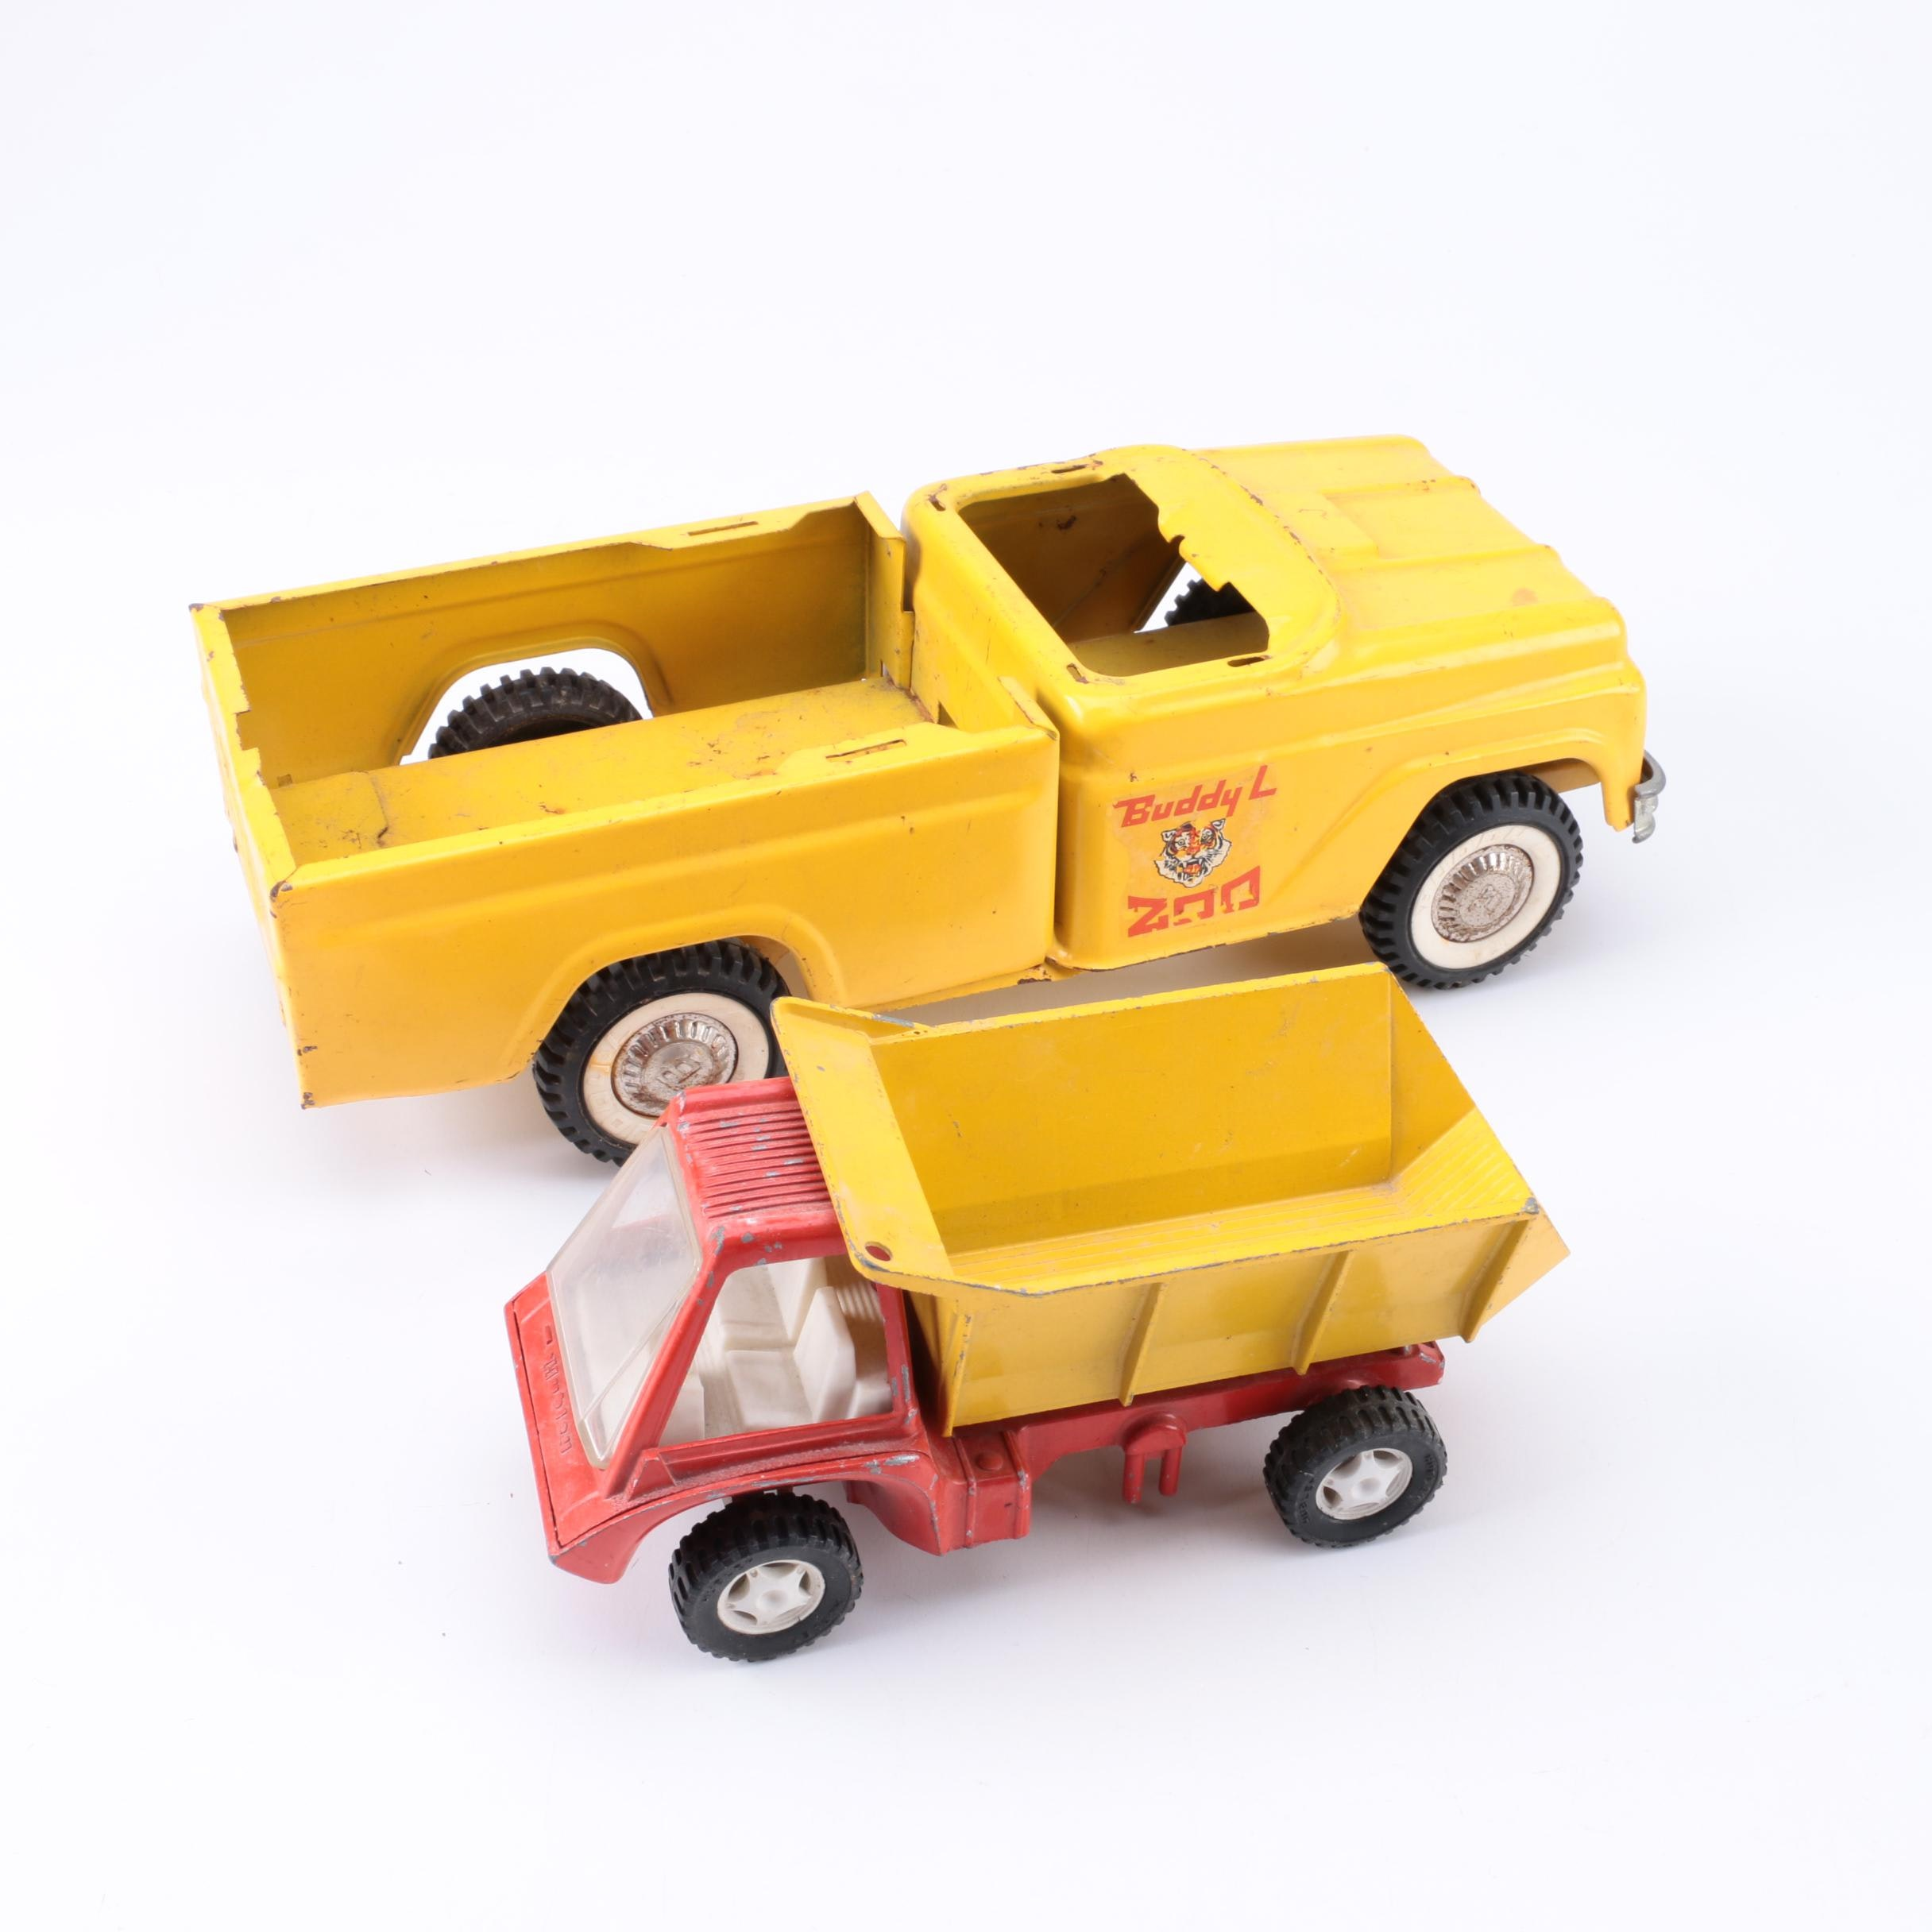 Pair of 1970s Pressed Steel Trucks Including Buddy L.